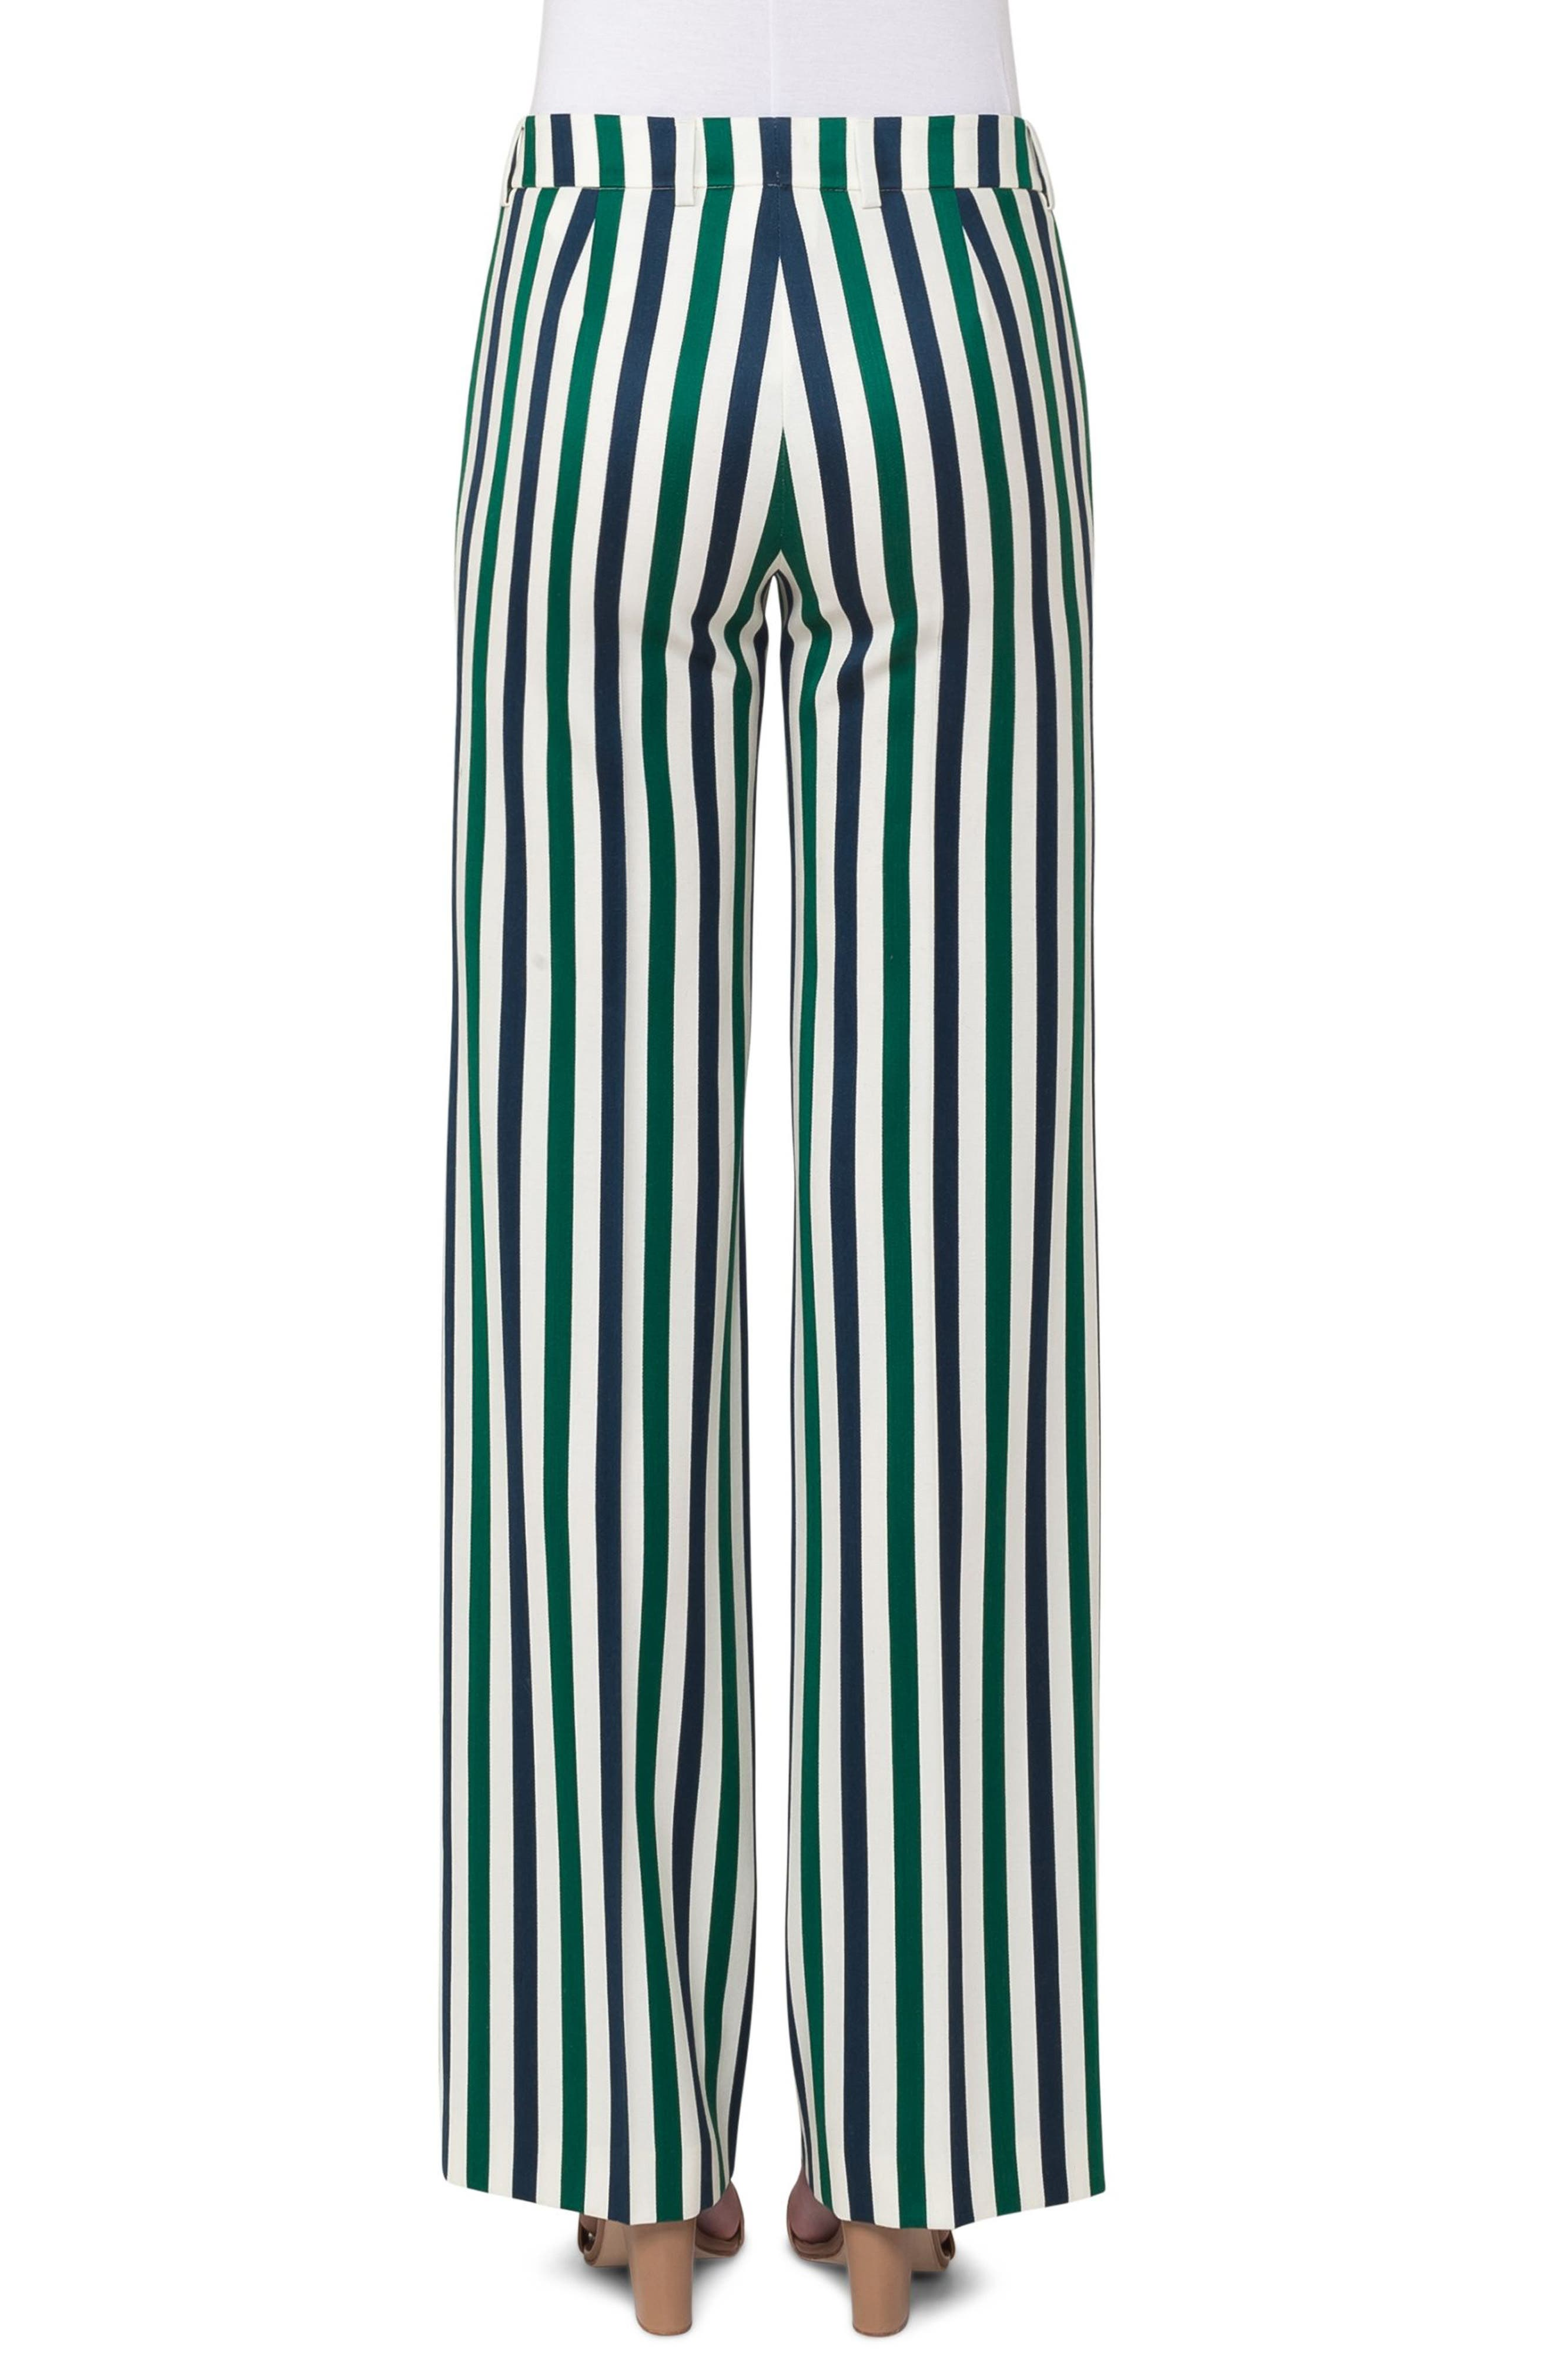 Mikka Stripe Pants,                             Alternate thumbnail 2, color,                             400